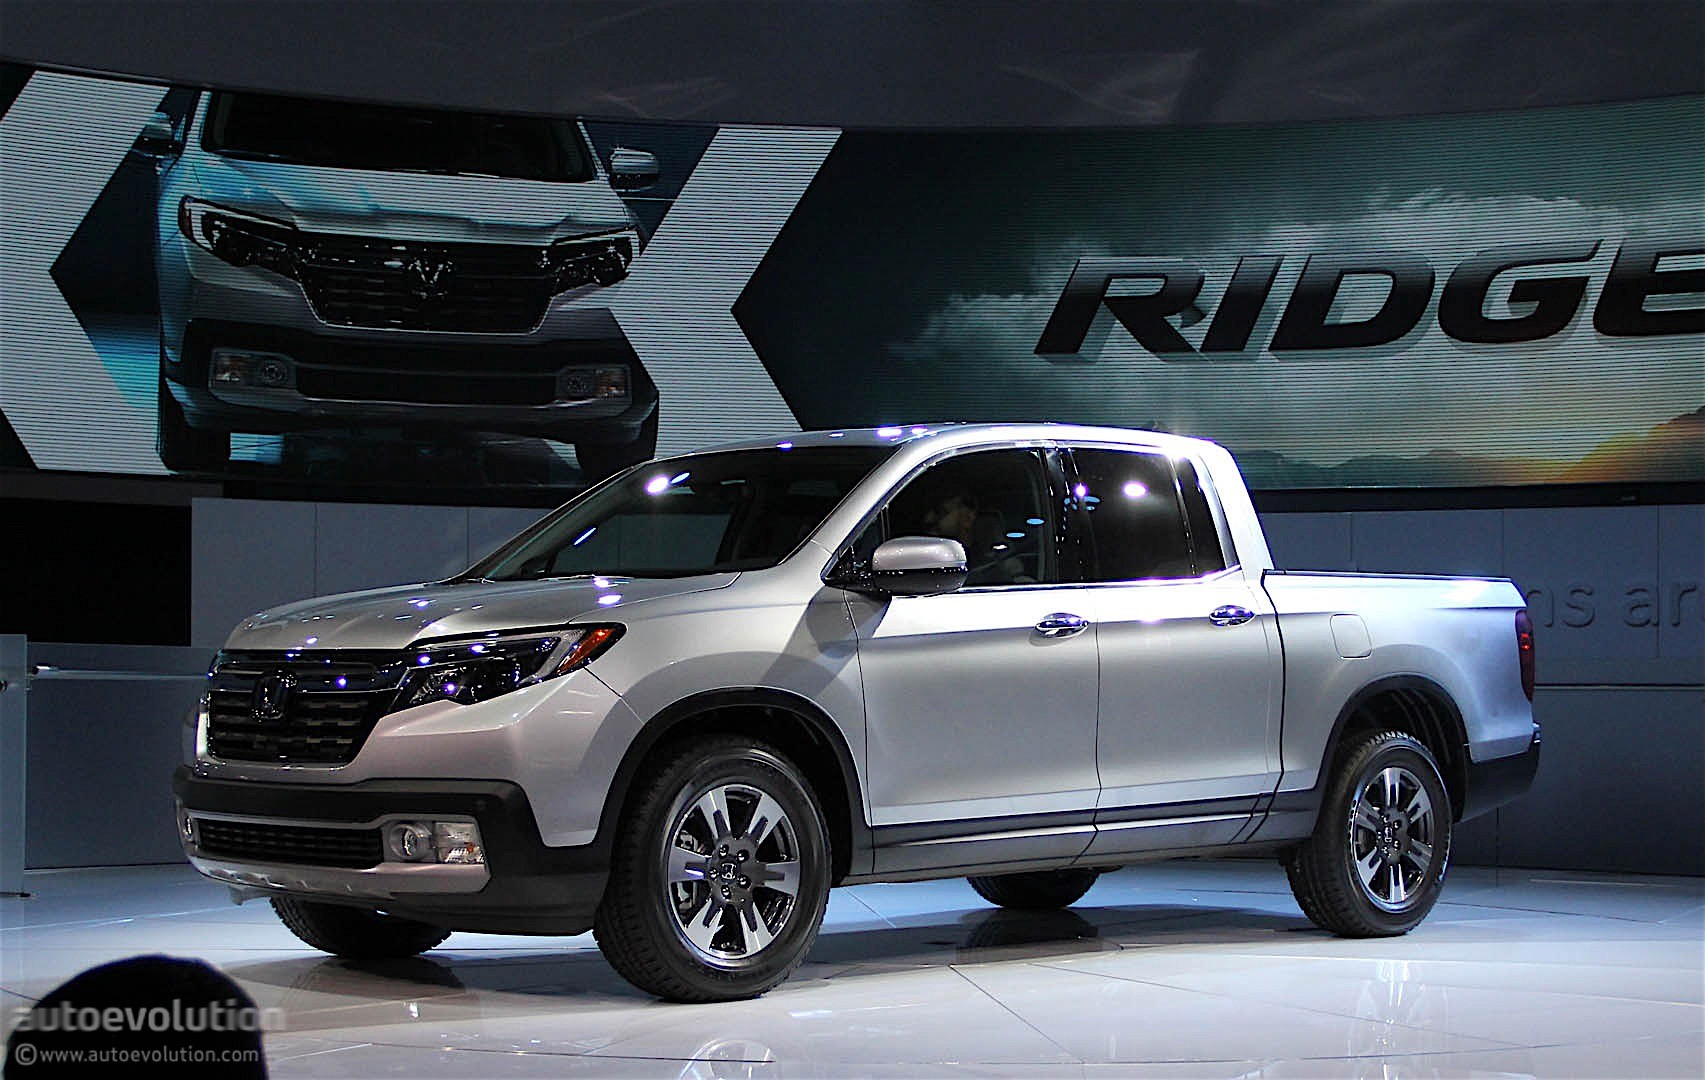 2017 Honda Ridgeline Debuts with Industry-First In-Bed ...